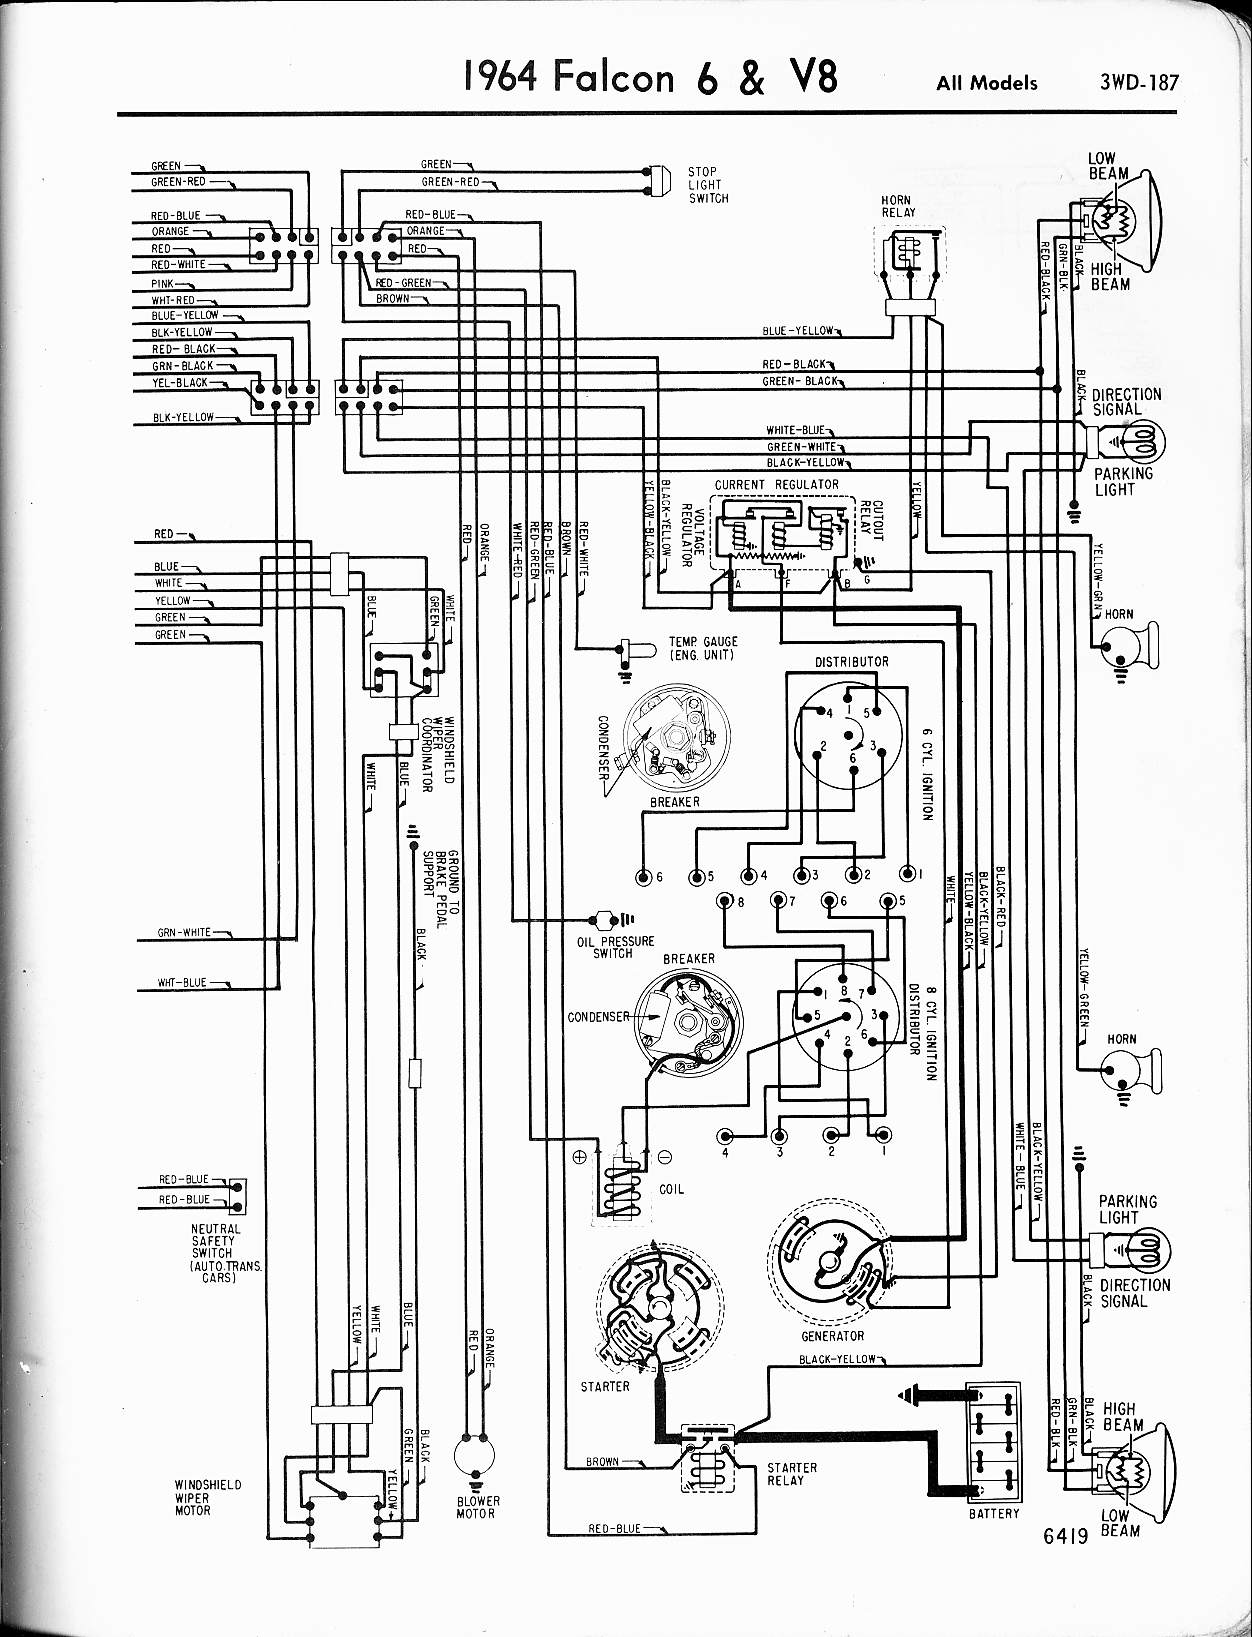 MWire5765 187 1964 falcon wiring help needed ford muscle forums ford 63 falcon wiring diagram at bayanpartner.co